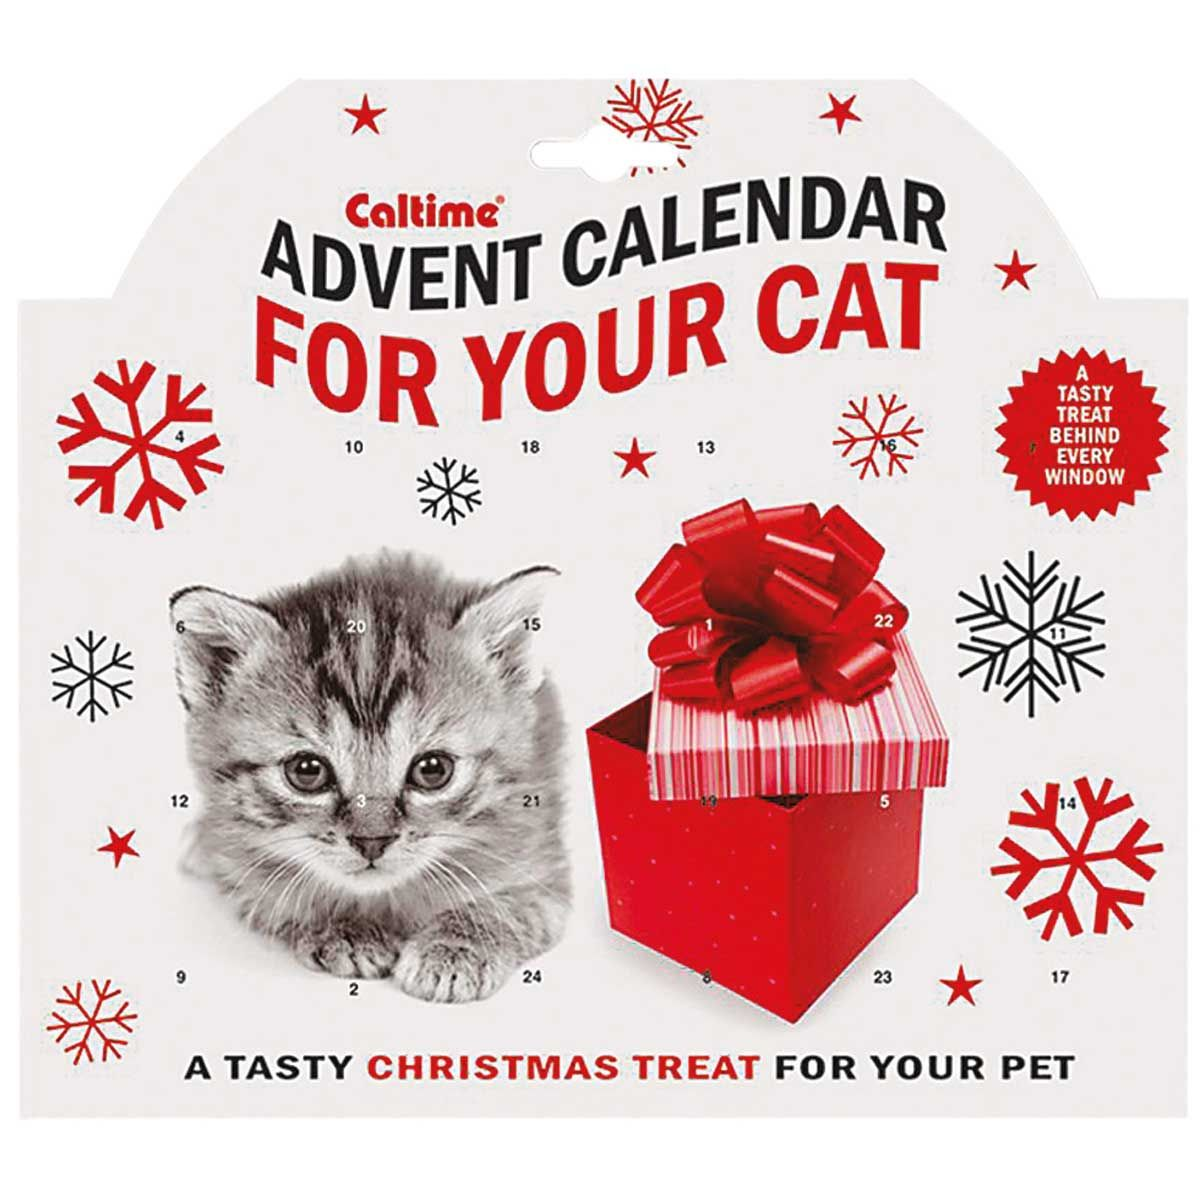 Cat Advent Calendar An edible treat for your cat behind